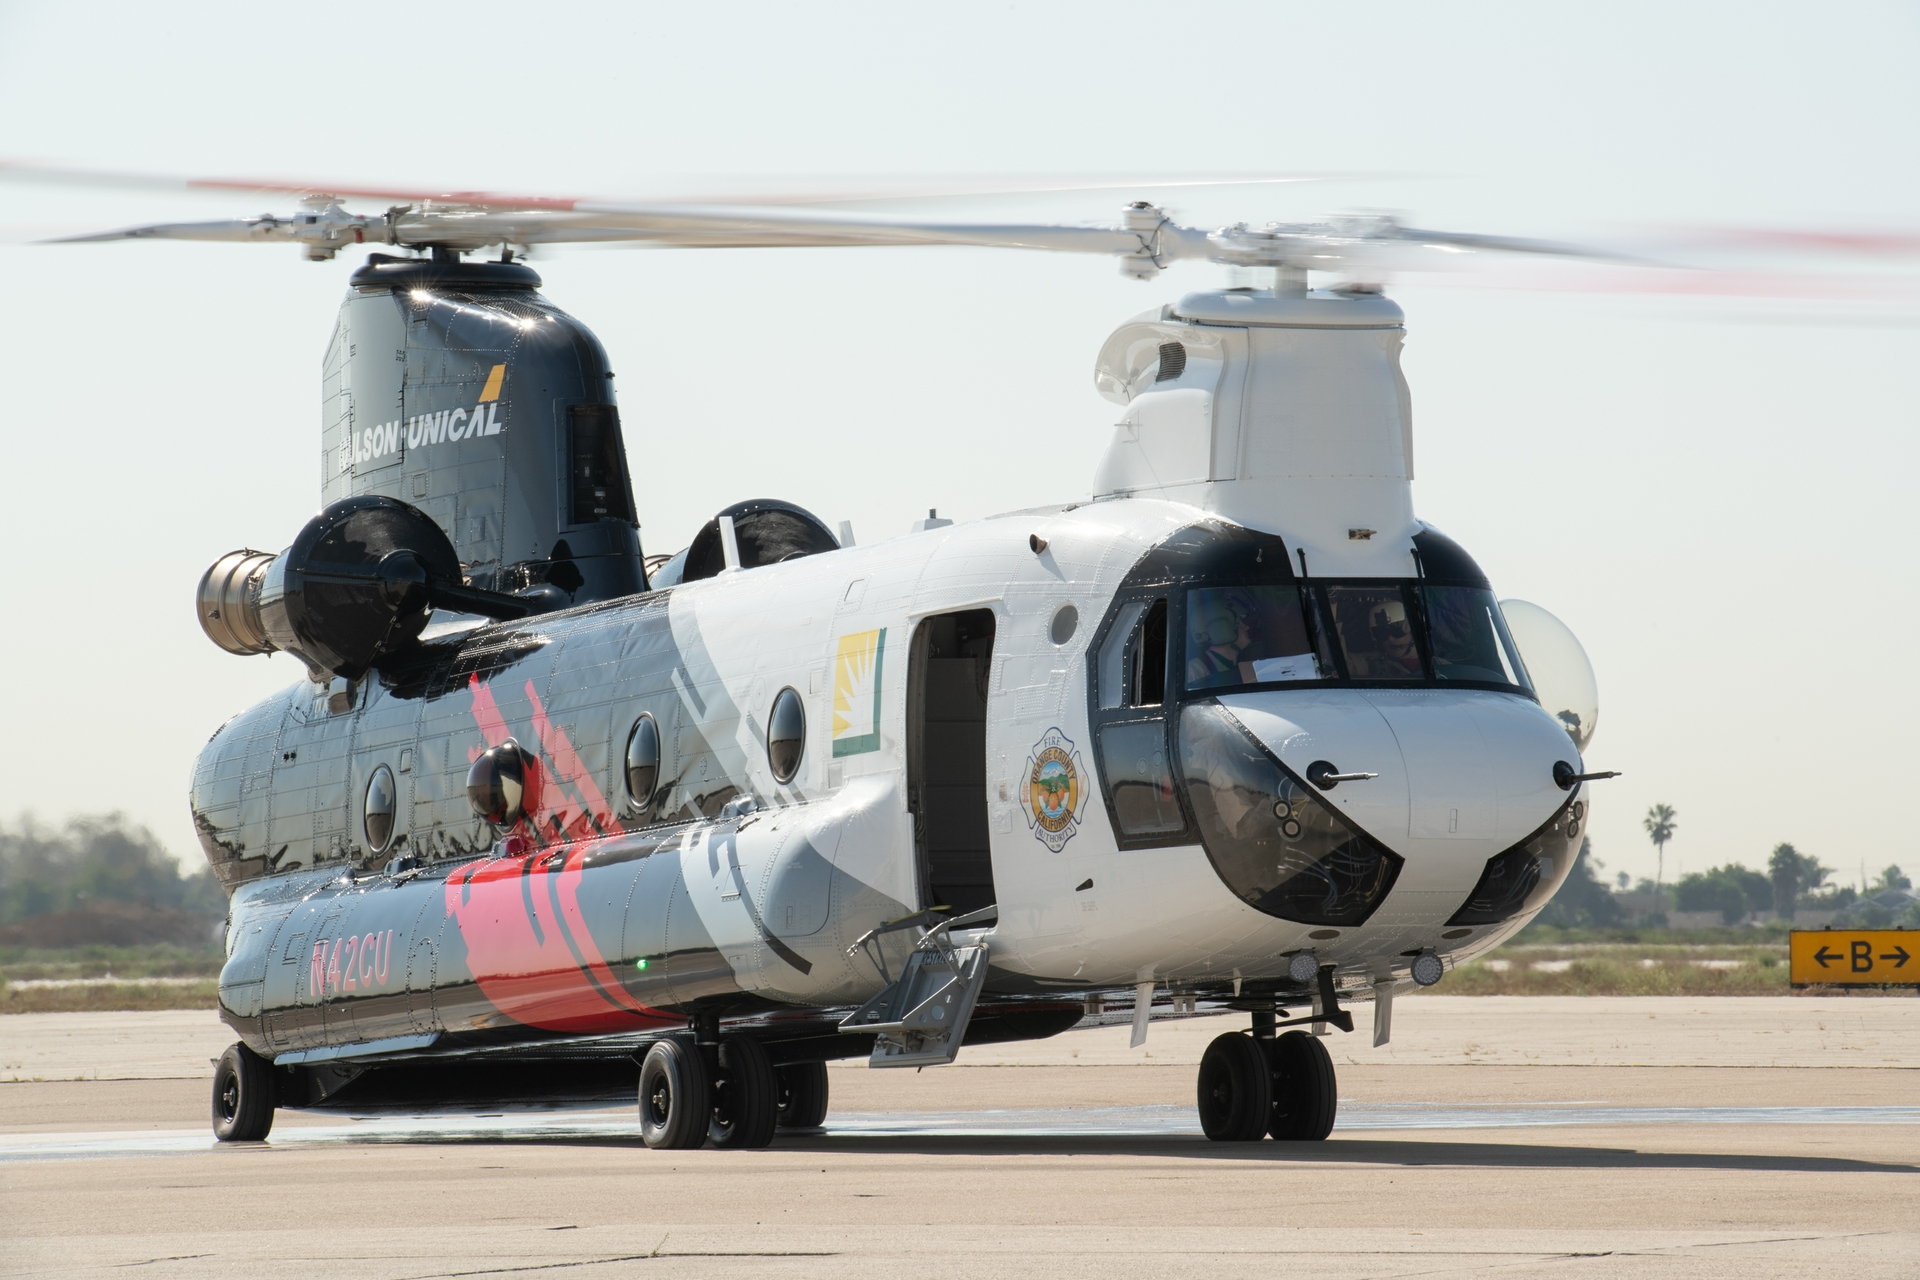 The CH-47 Chinook helitanker is based at the Joint Forces Training Base in Los Alamitos and is available around-the-clock for daytime and nighttime fire suppression within SCE's 50,000-square-mile service area — and beyond, if needed.